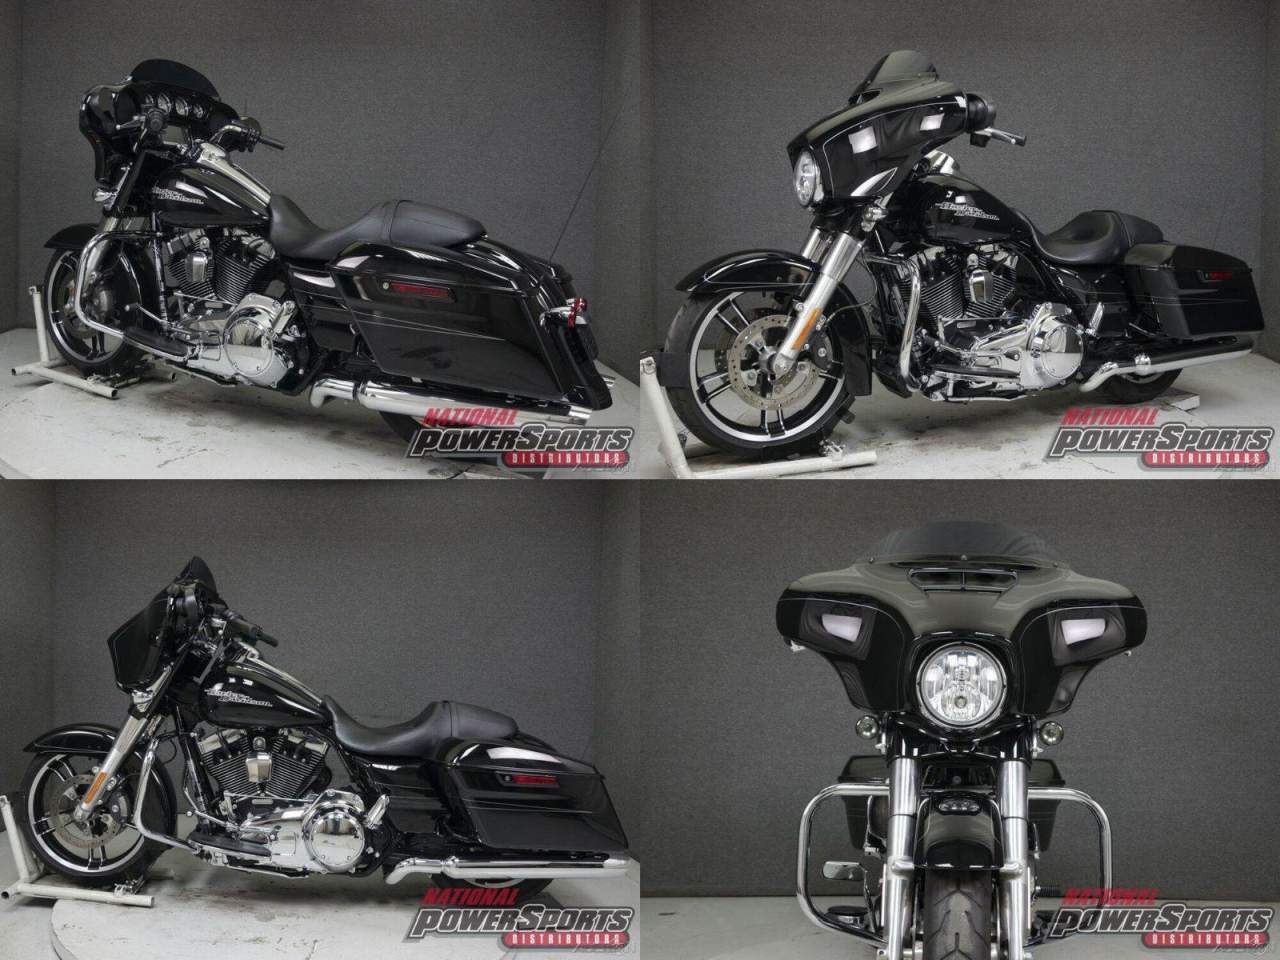 2015 Harley-Davidson Touring VIVID BLACK used for sale near me